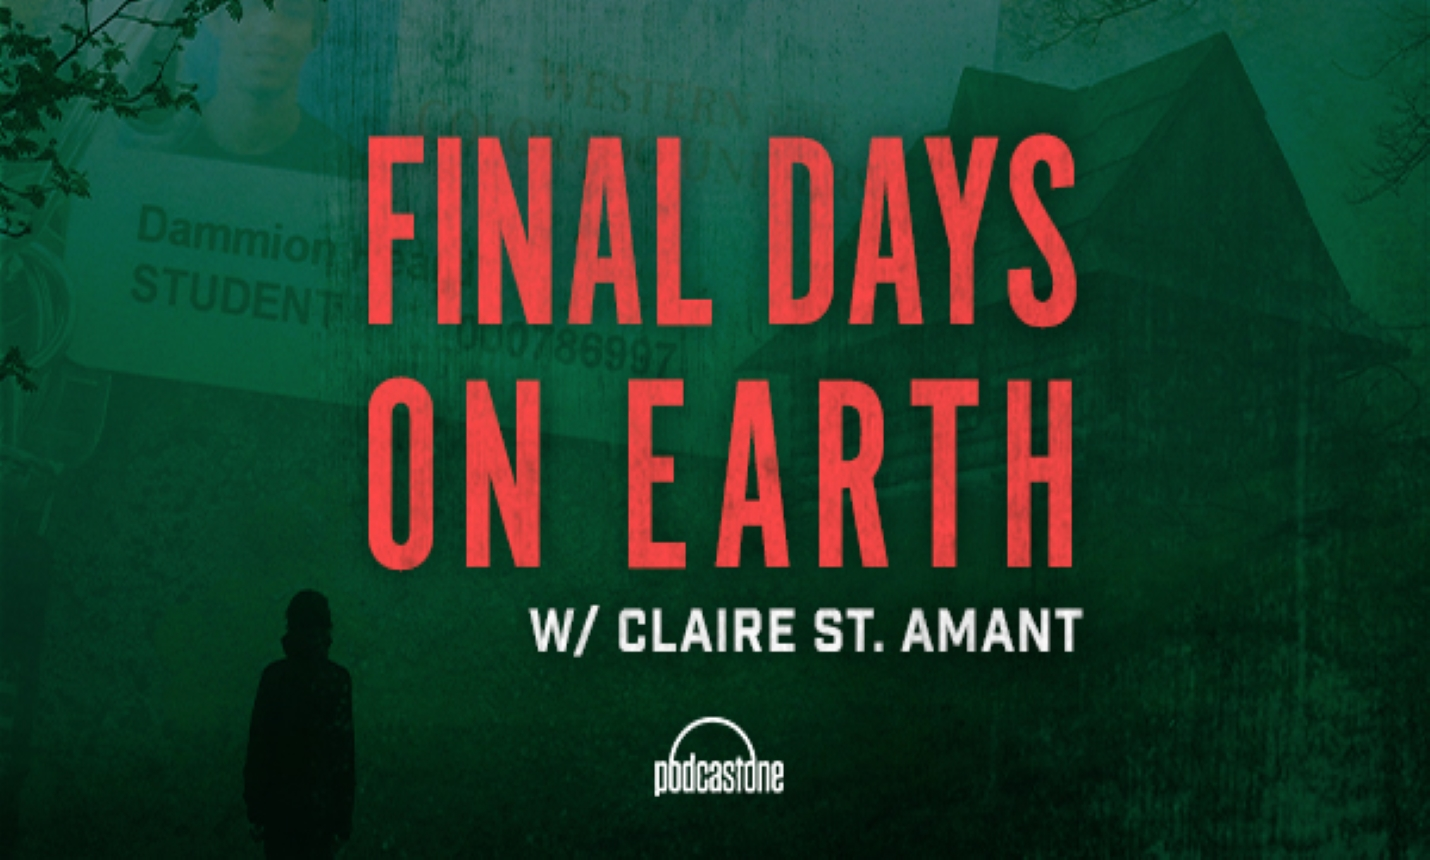 Final Days on Earth